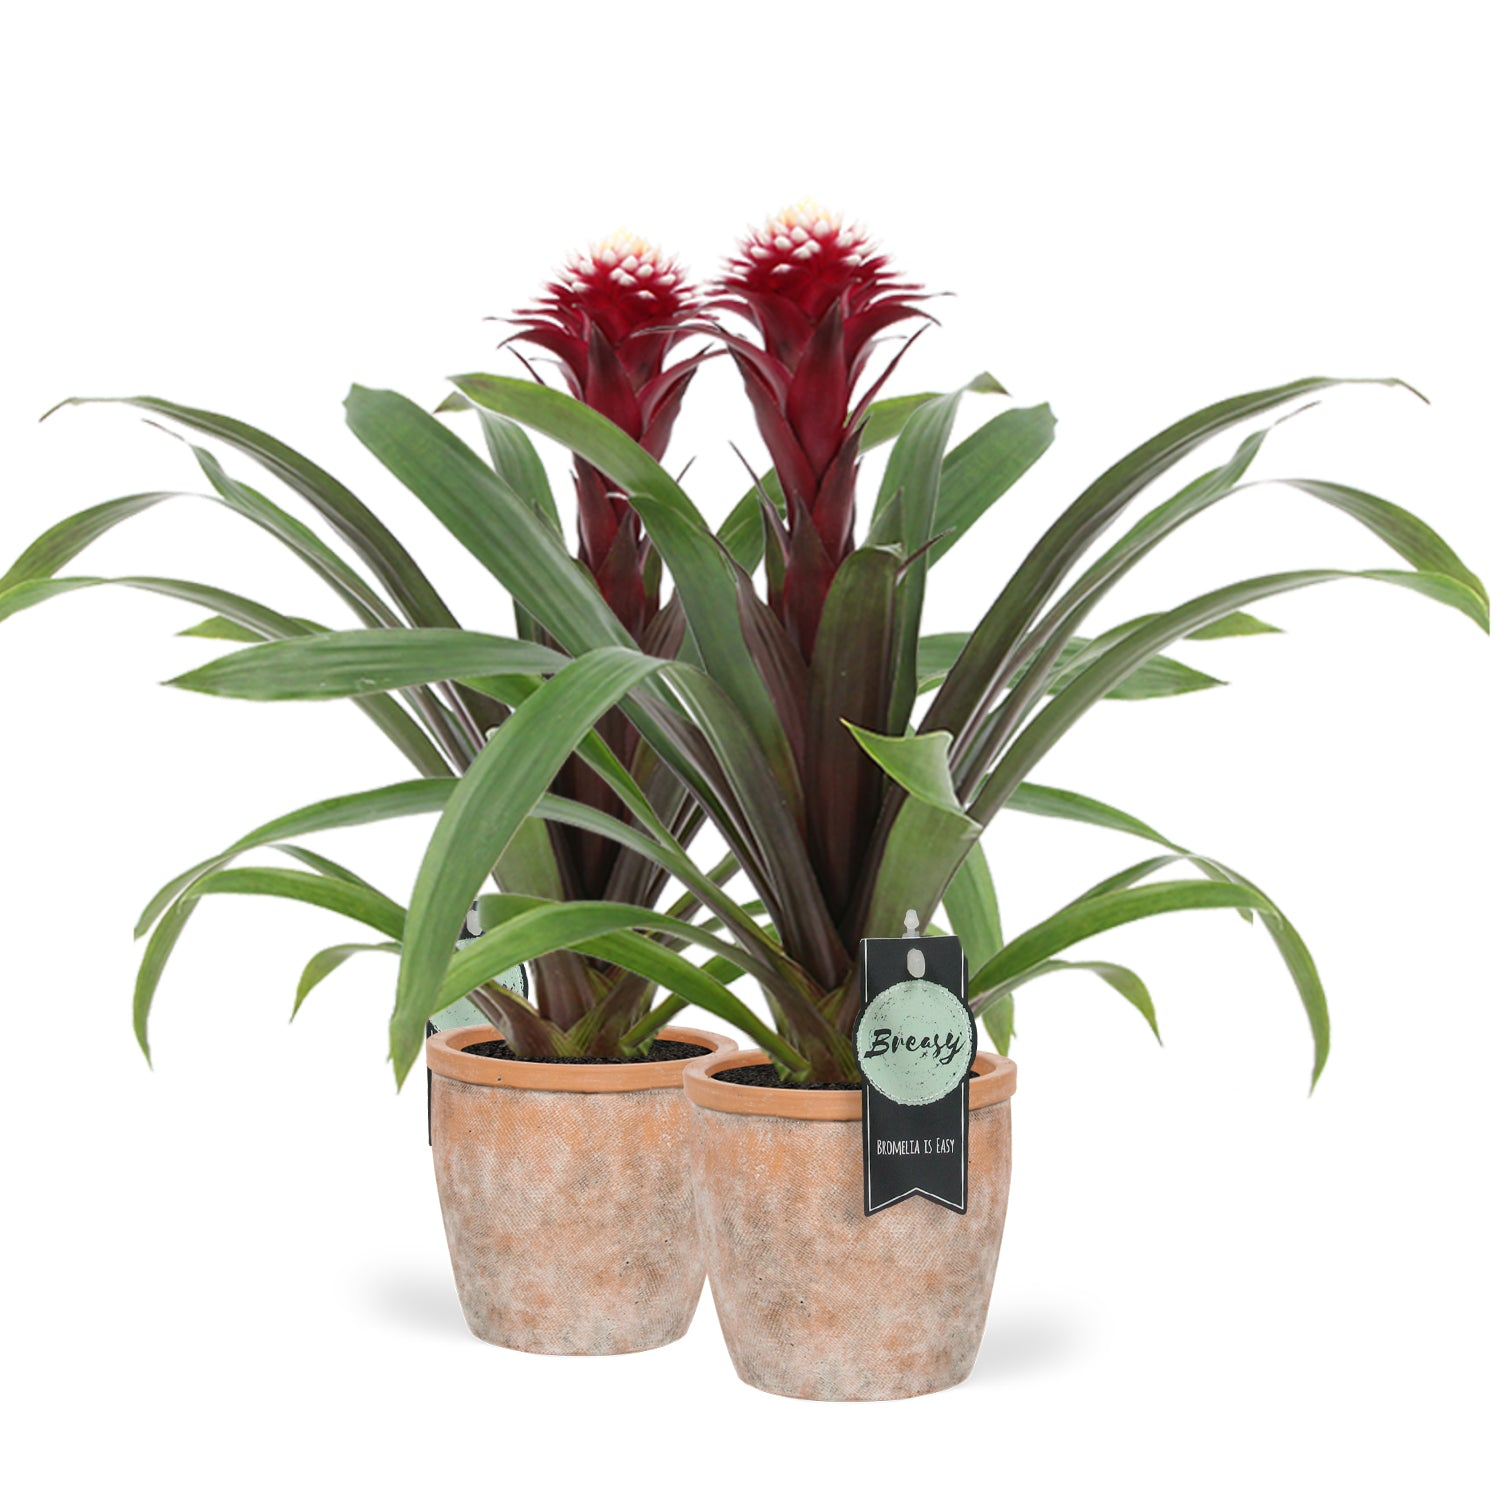 Choice of Green - Bromelia Guzmania Francesca + pot